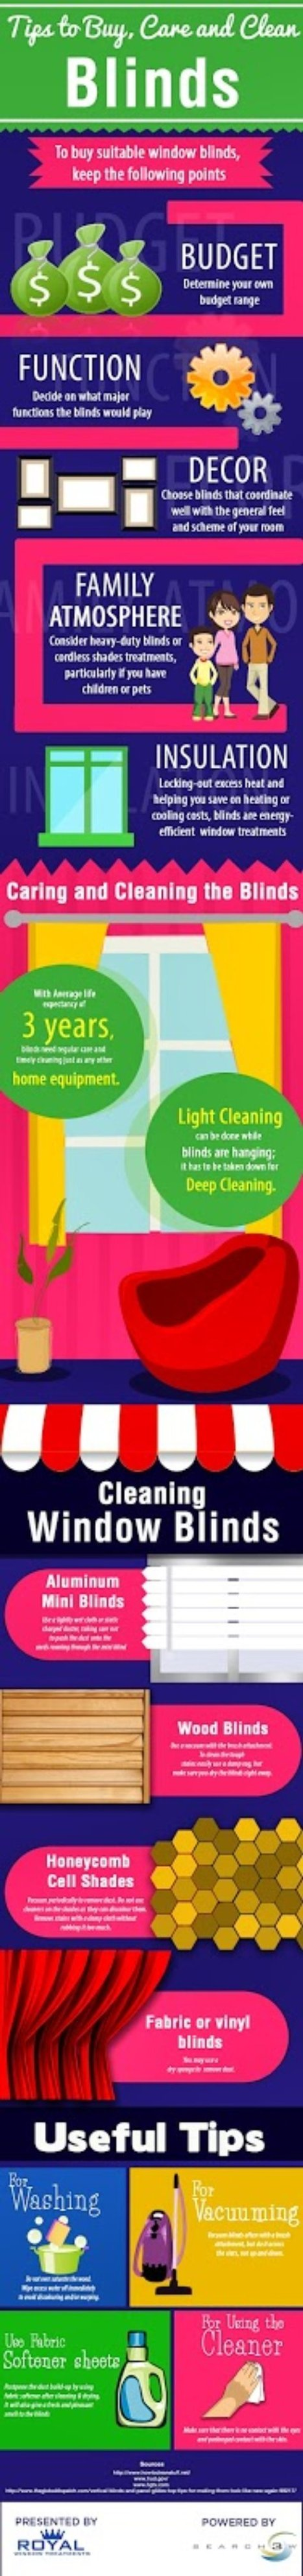 Tips to Buy, Care and Clean Blind | Royal Decorators | Scoop.it